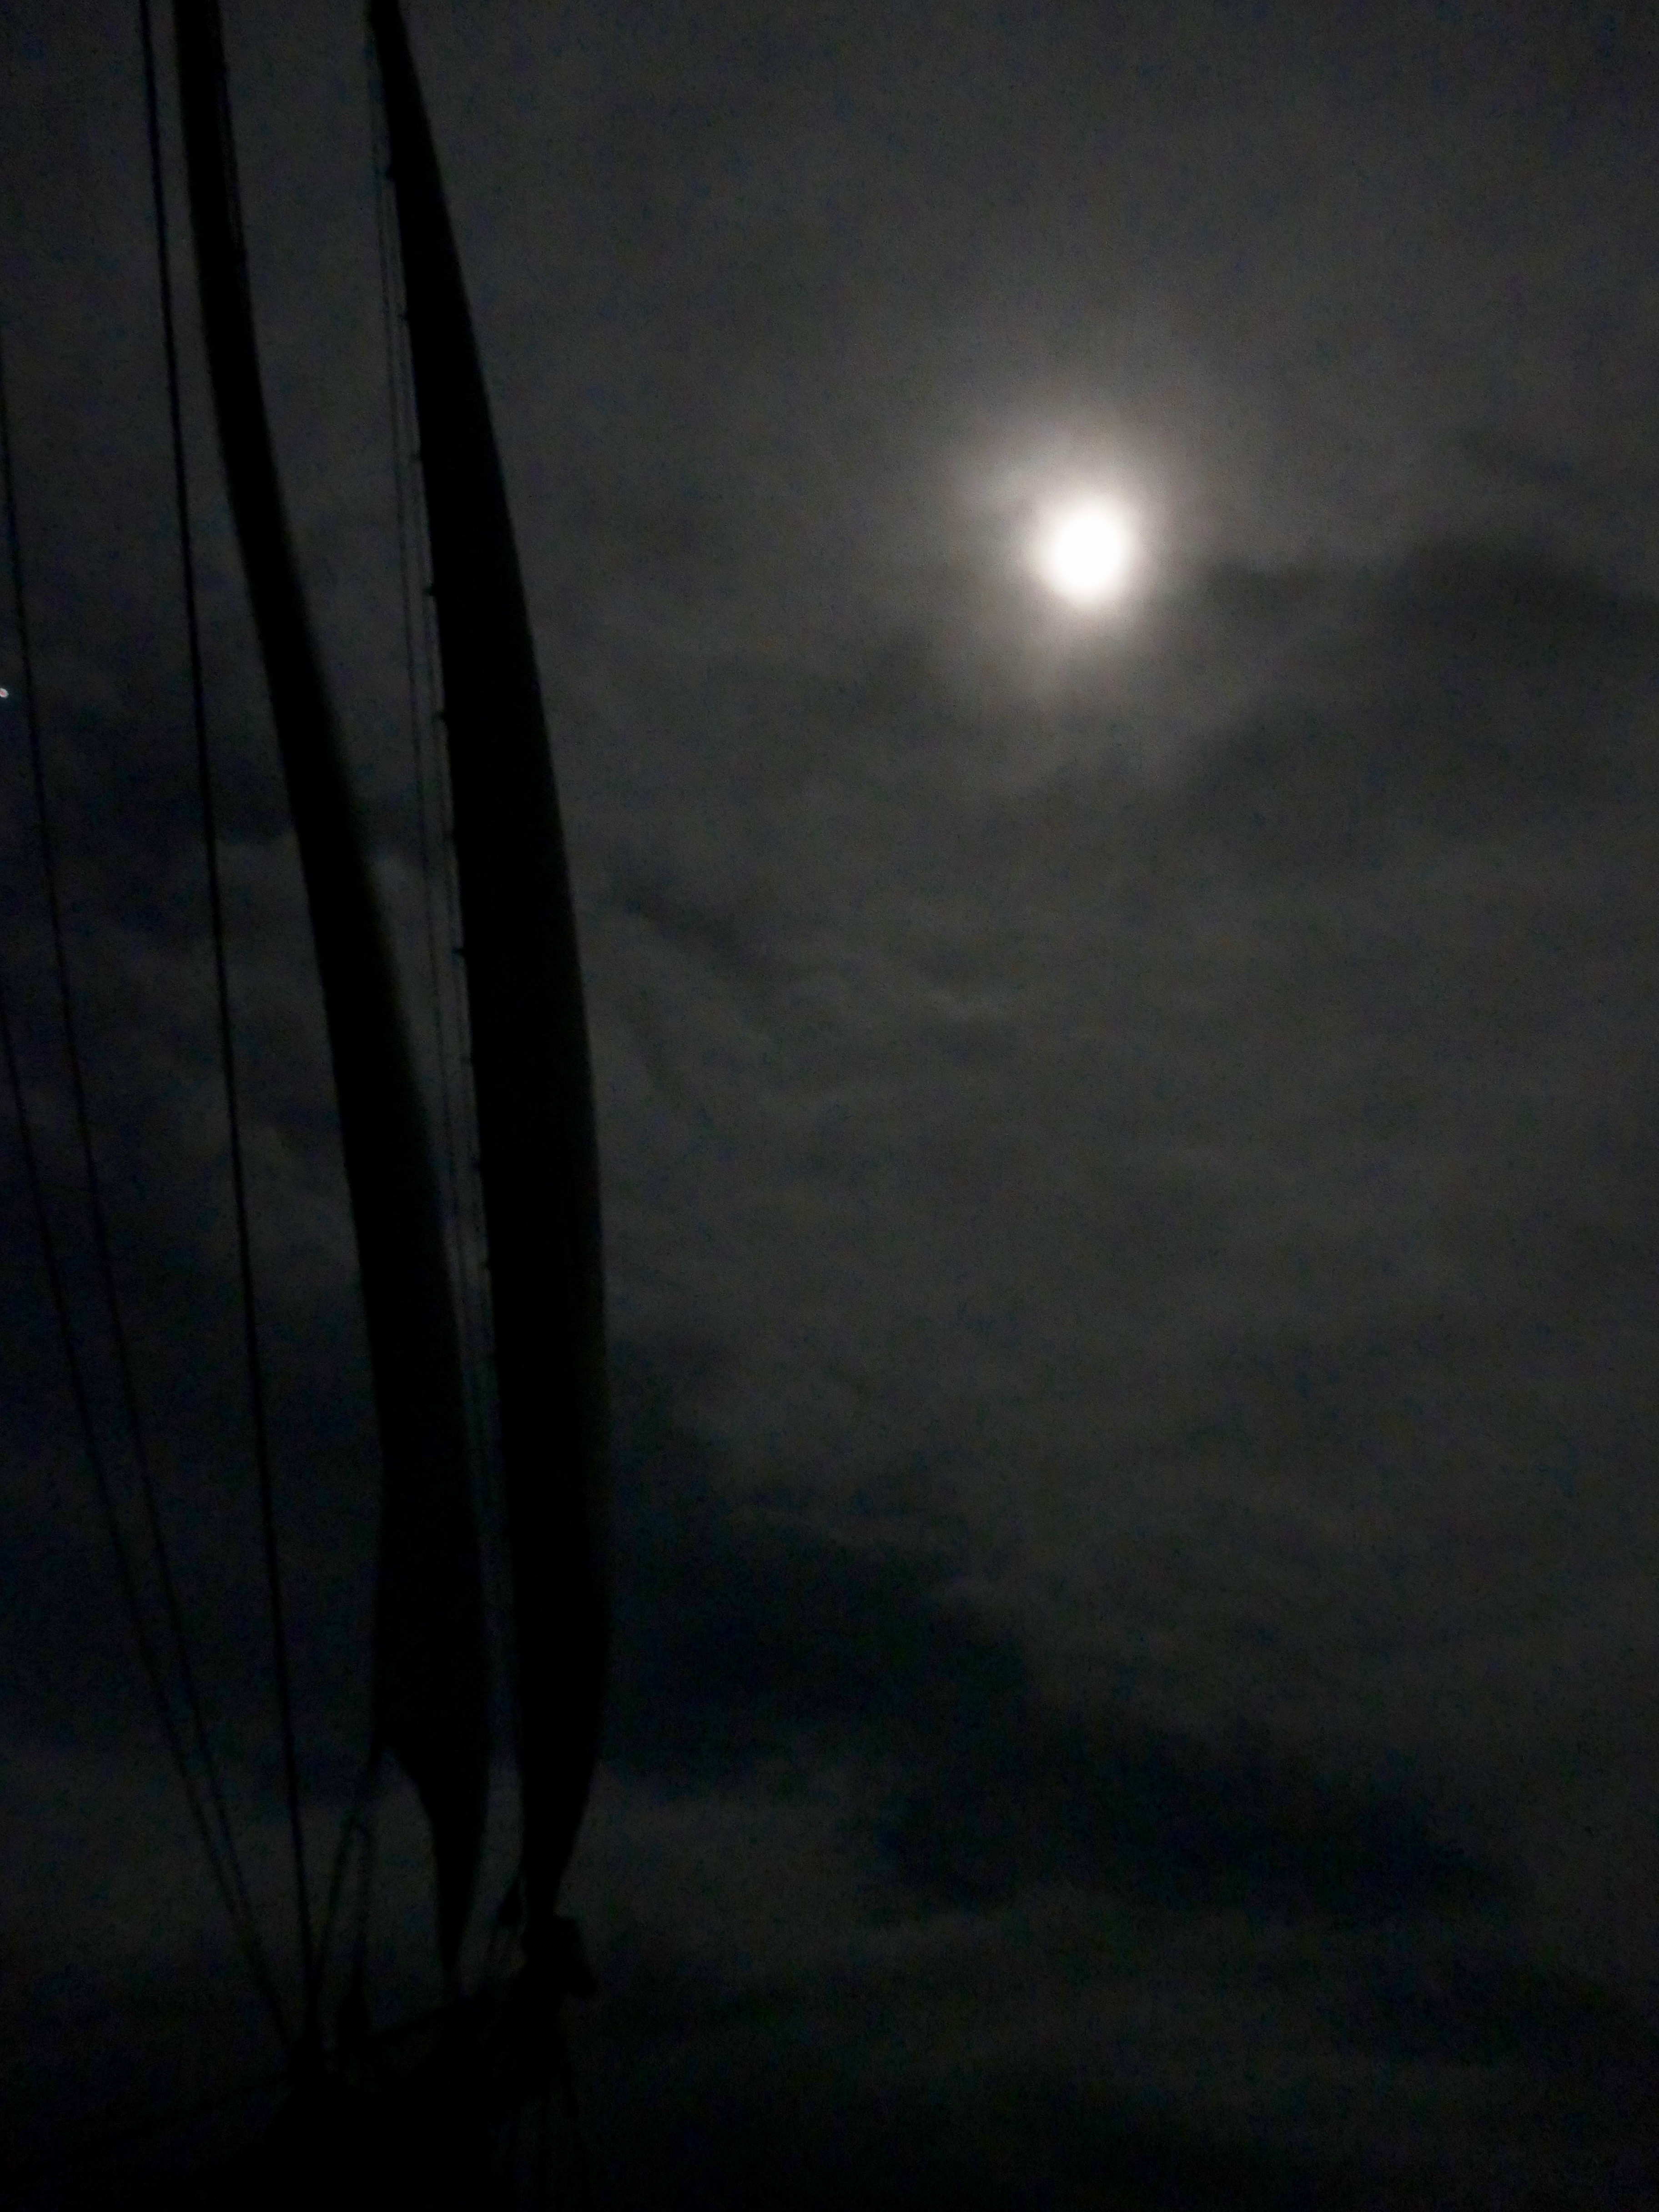 The moon and foresails of Europa at sea: the sailors' migration pulled by the moon and weather and season as surely as the wildlife